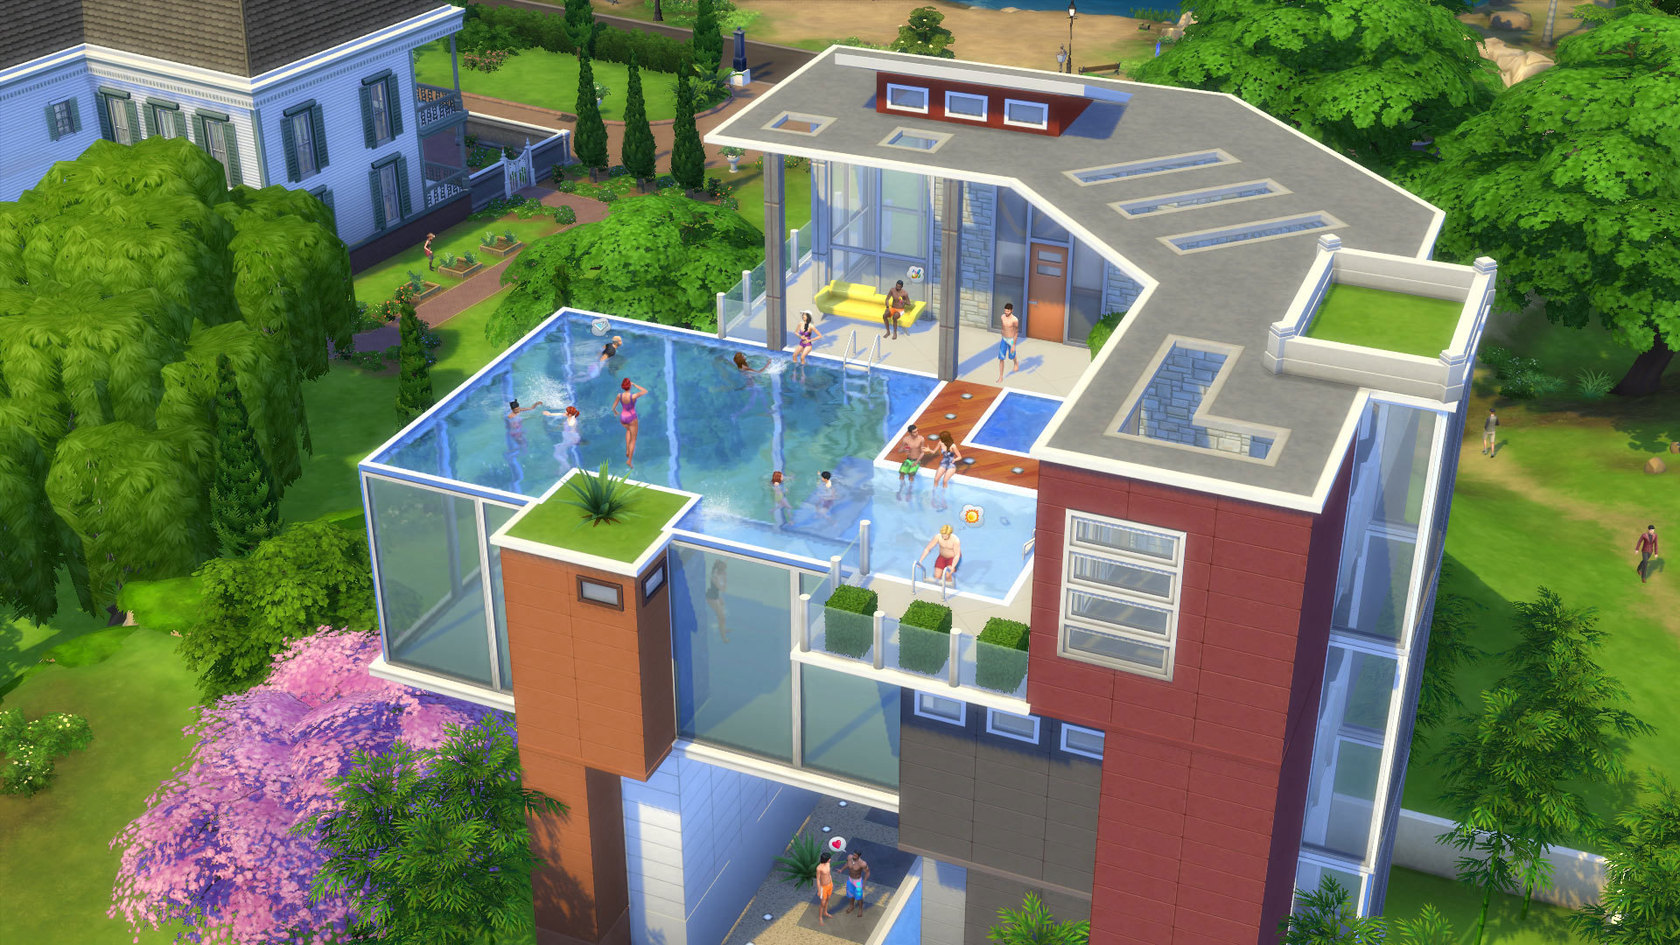 The sims 4 for Pool design sims 4